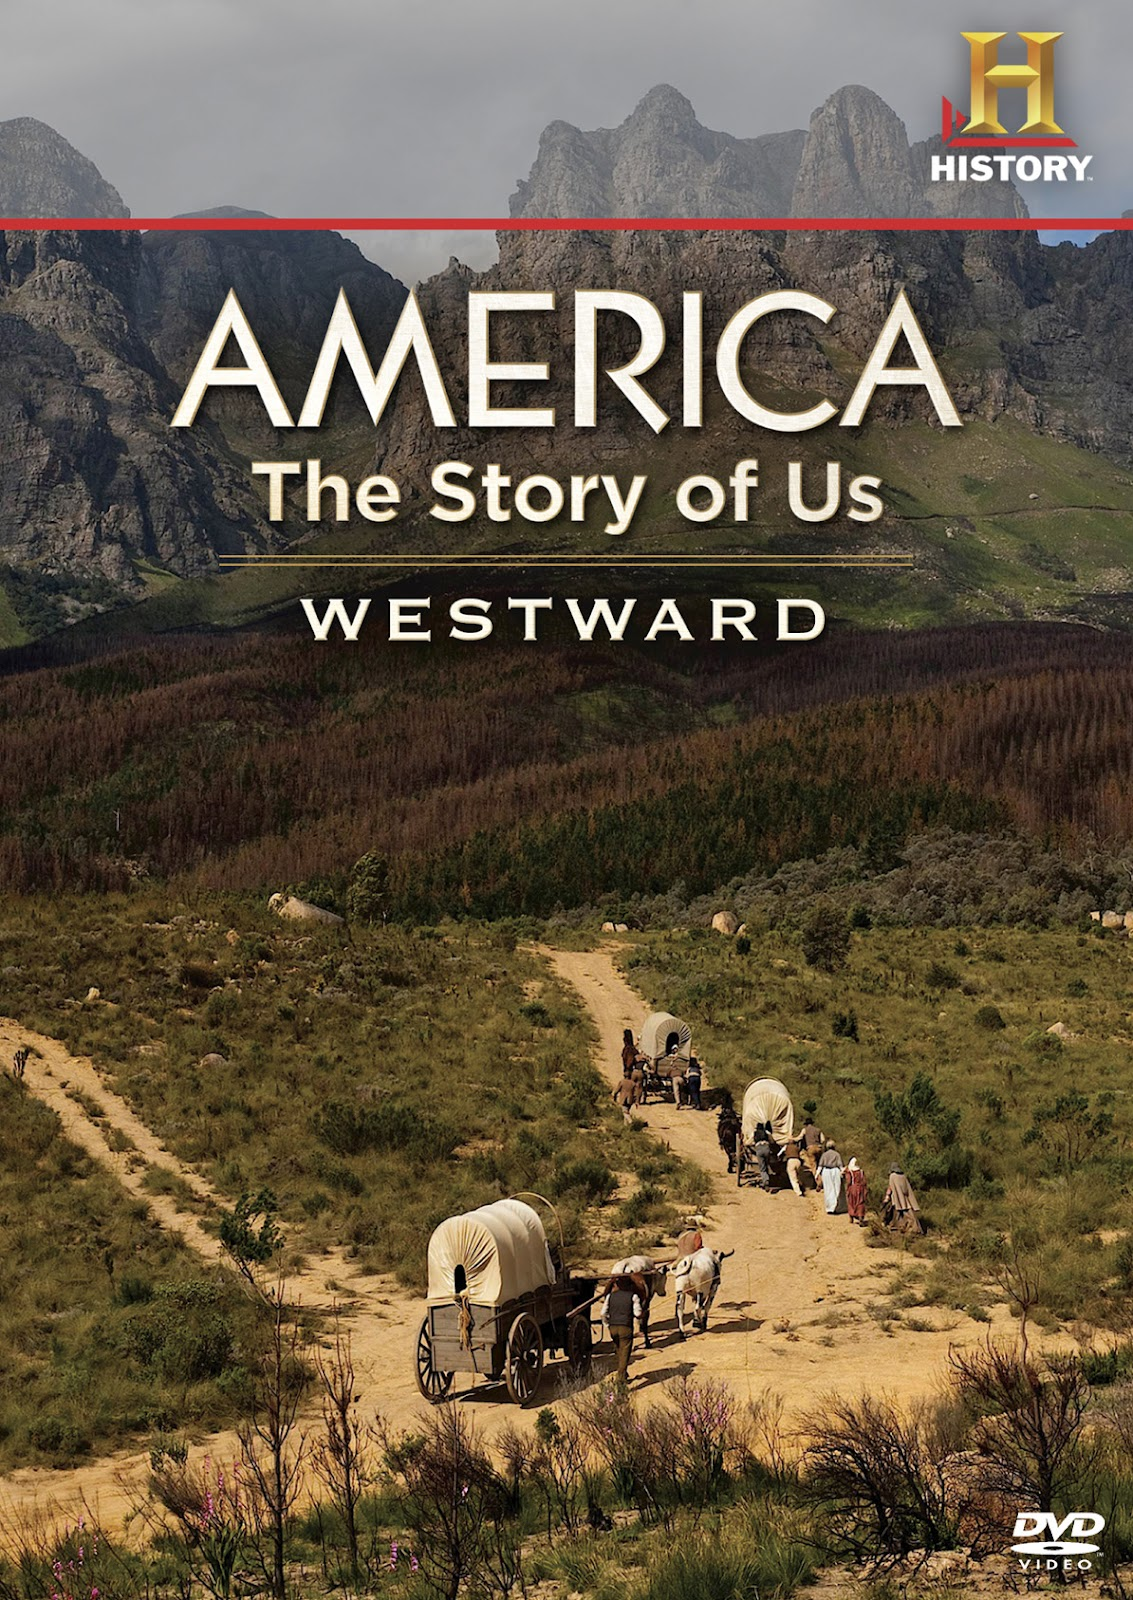 America The Story Of Us Episode 3 Westward 1 Lesson